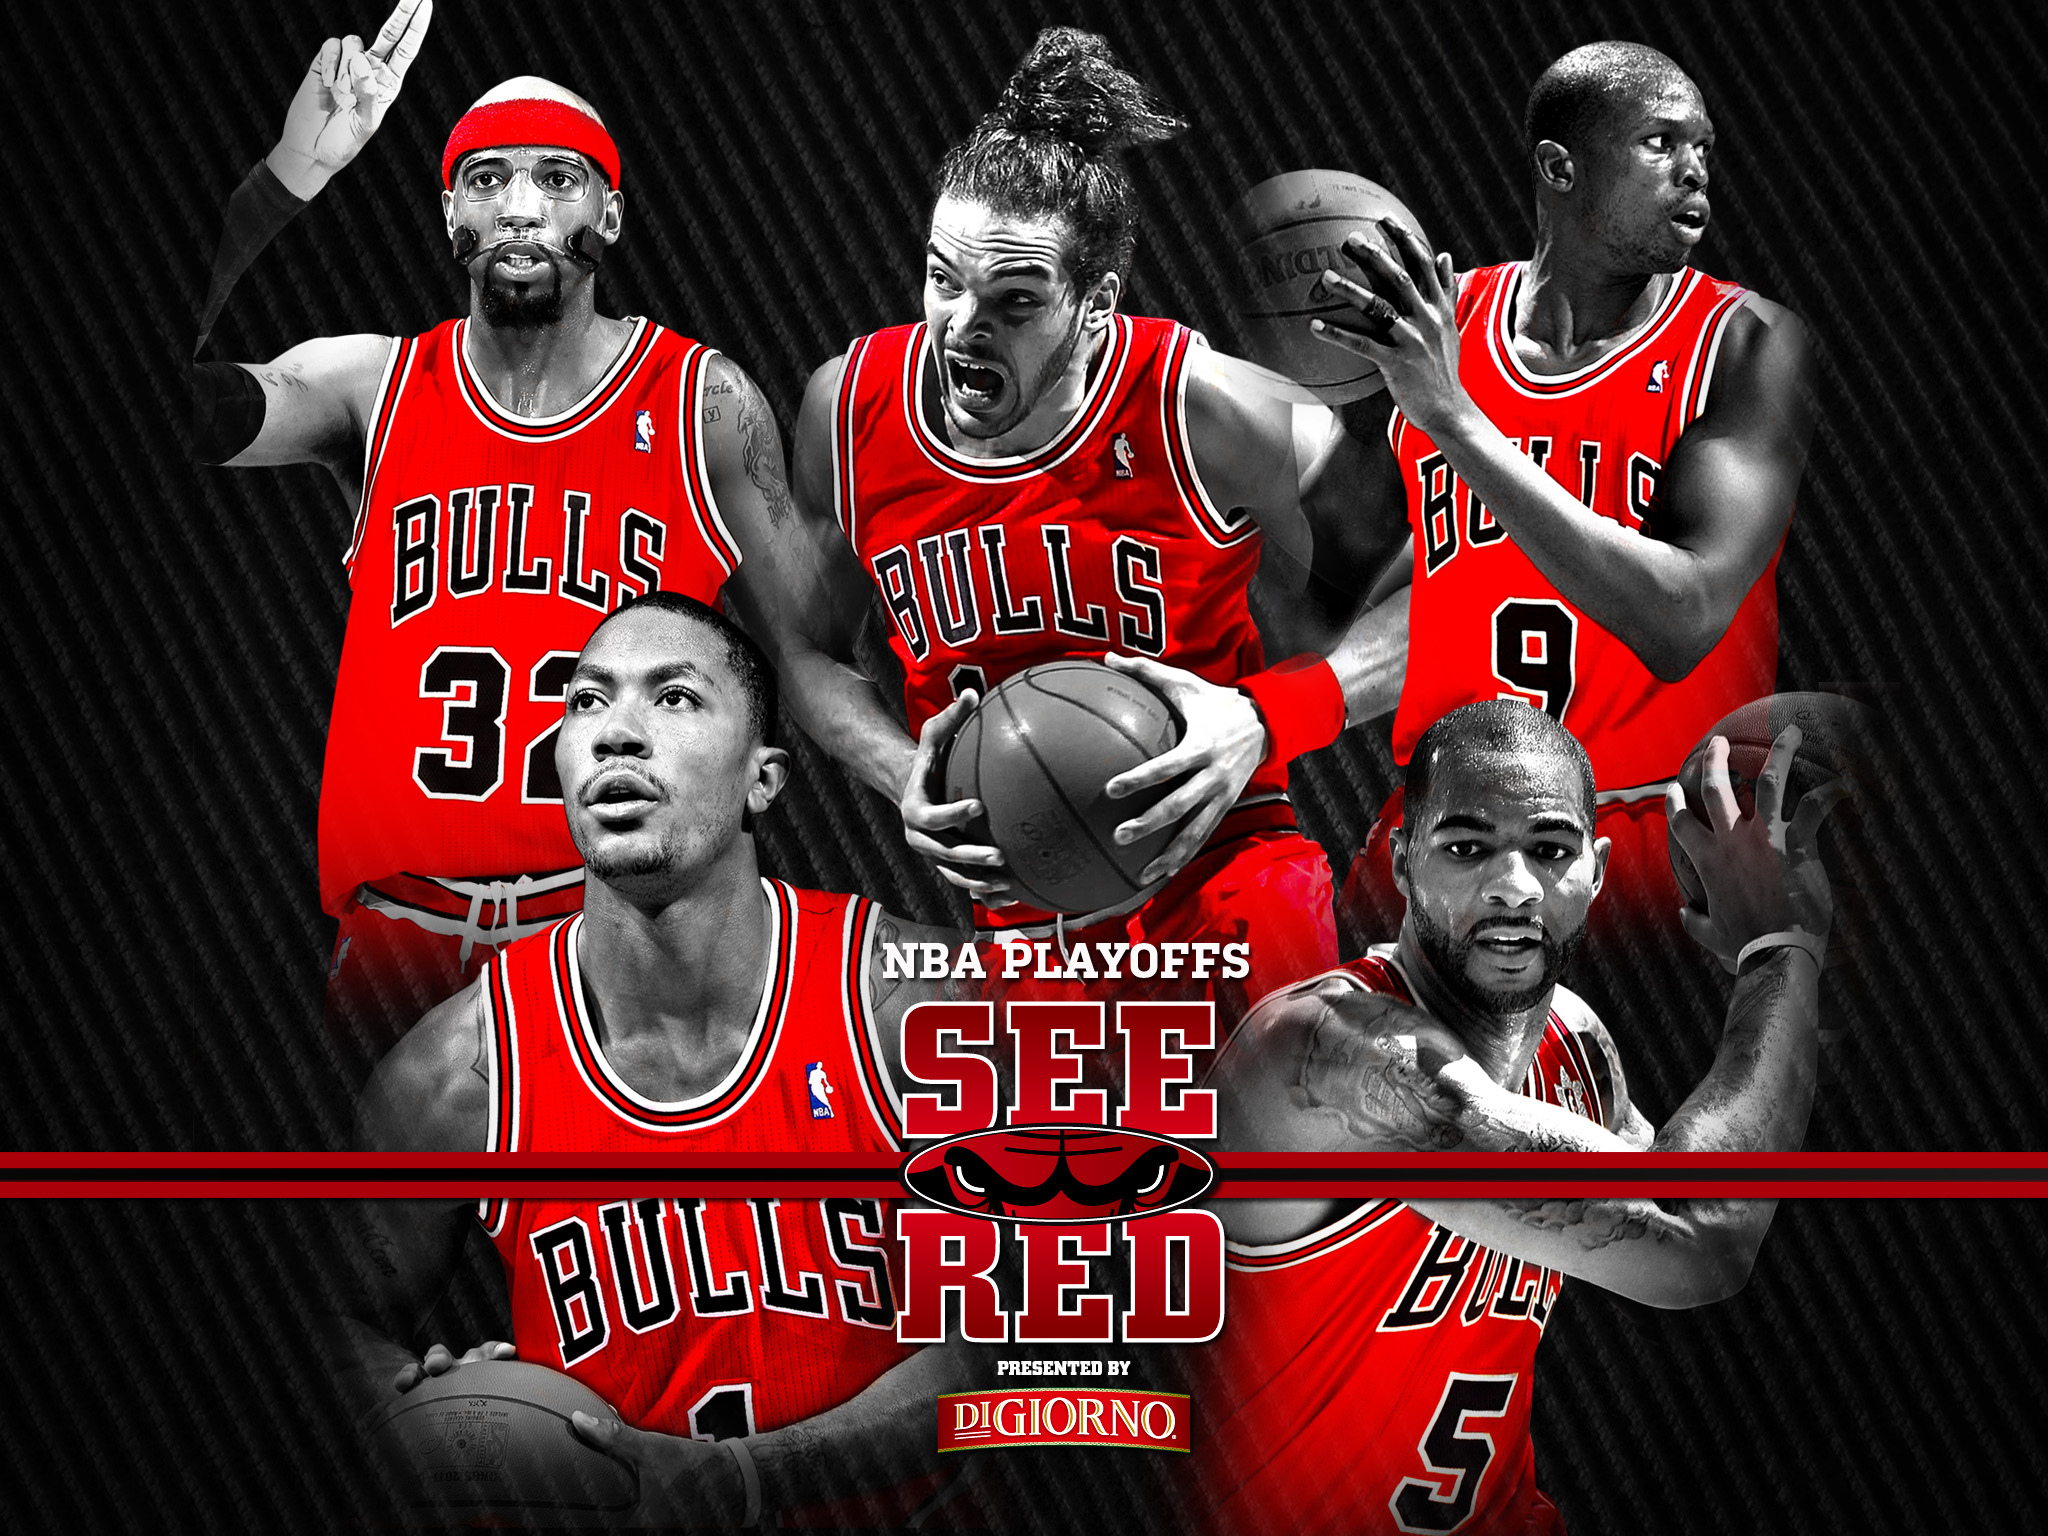 2012 playoffs: see red wallpaper | chicago bulls